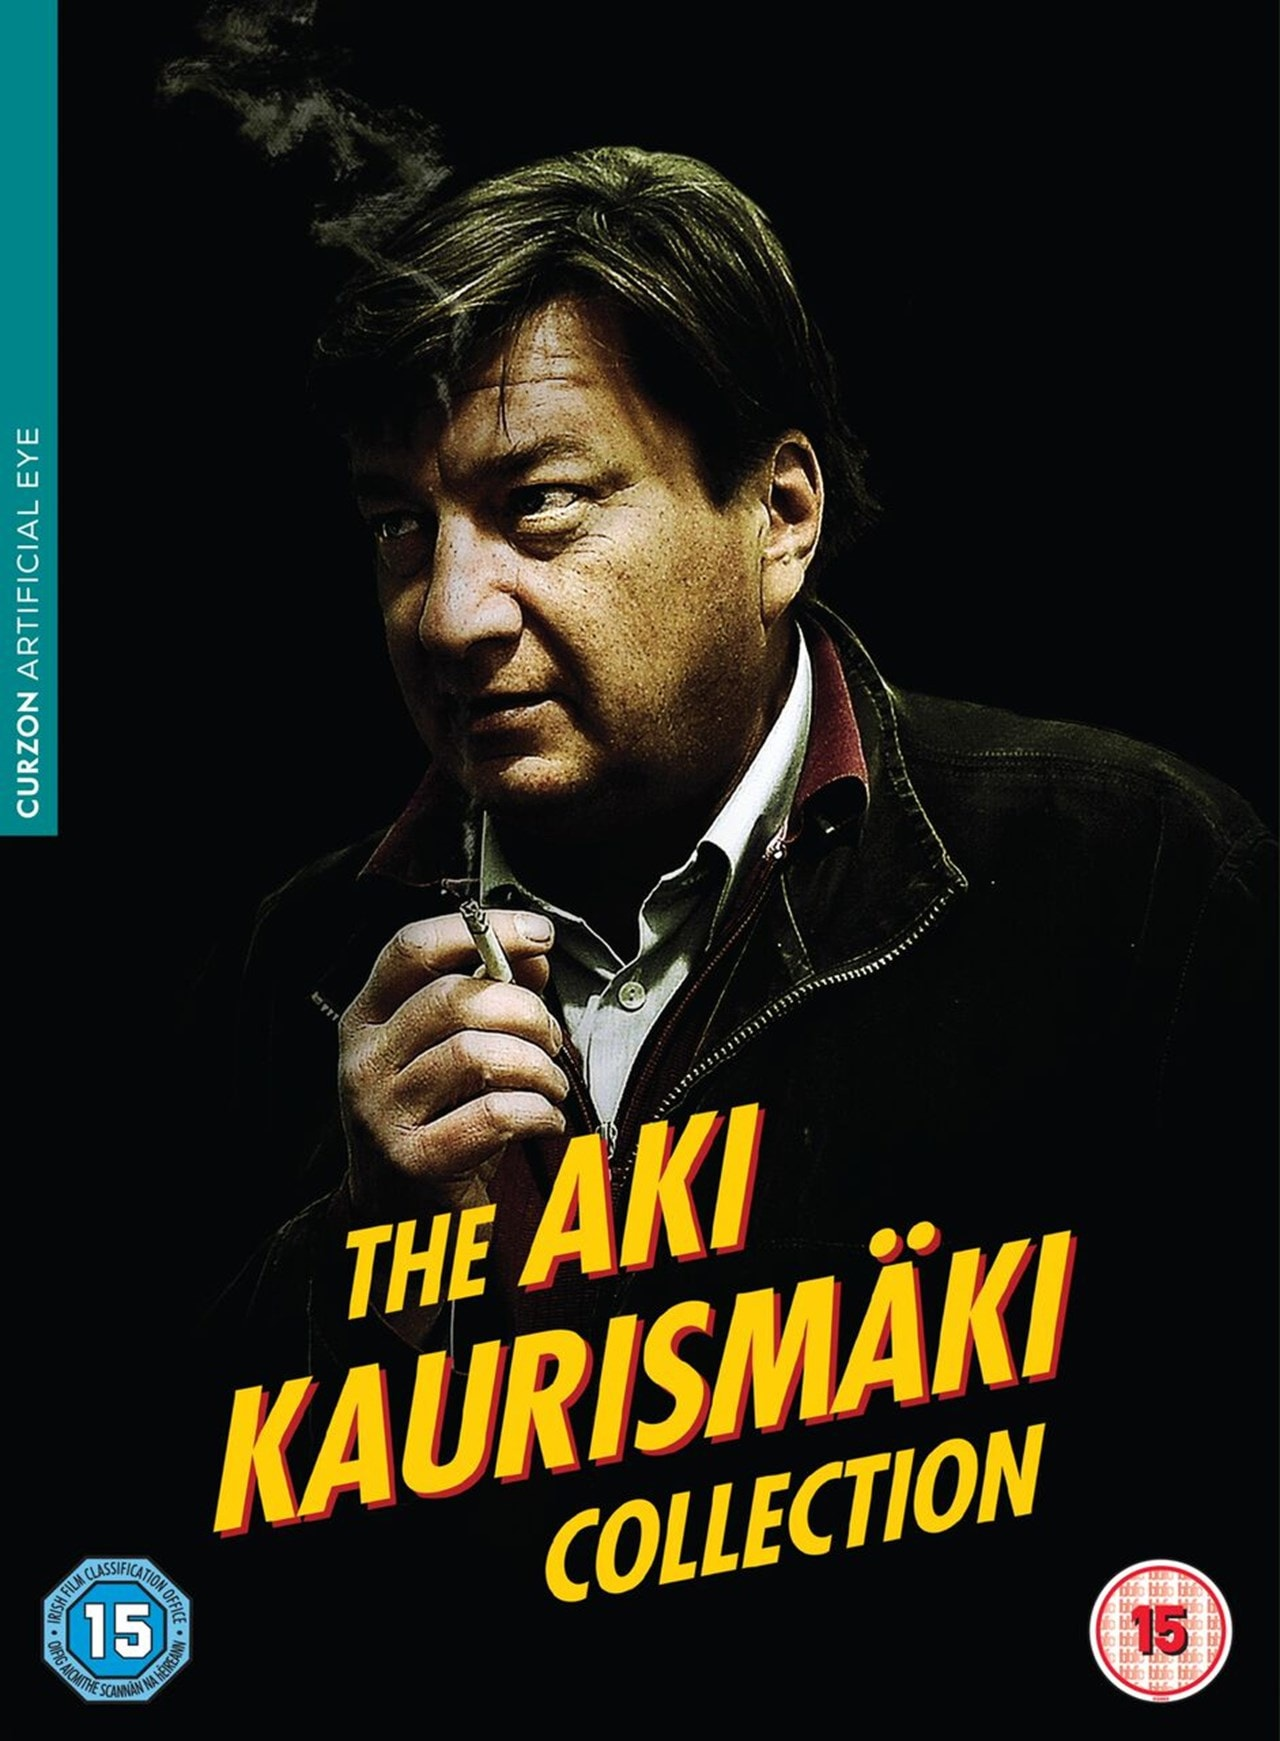 The Aki Kaurismaki Collection - 1